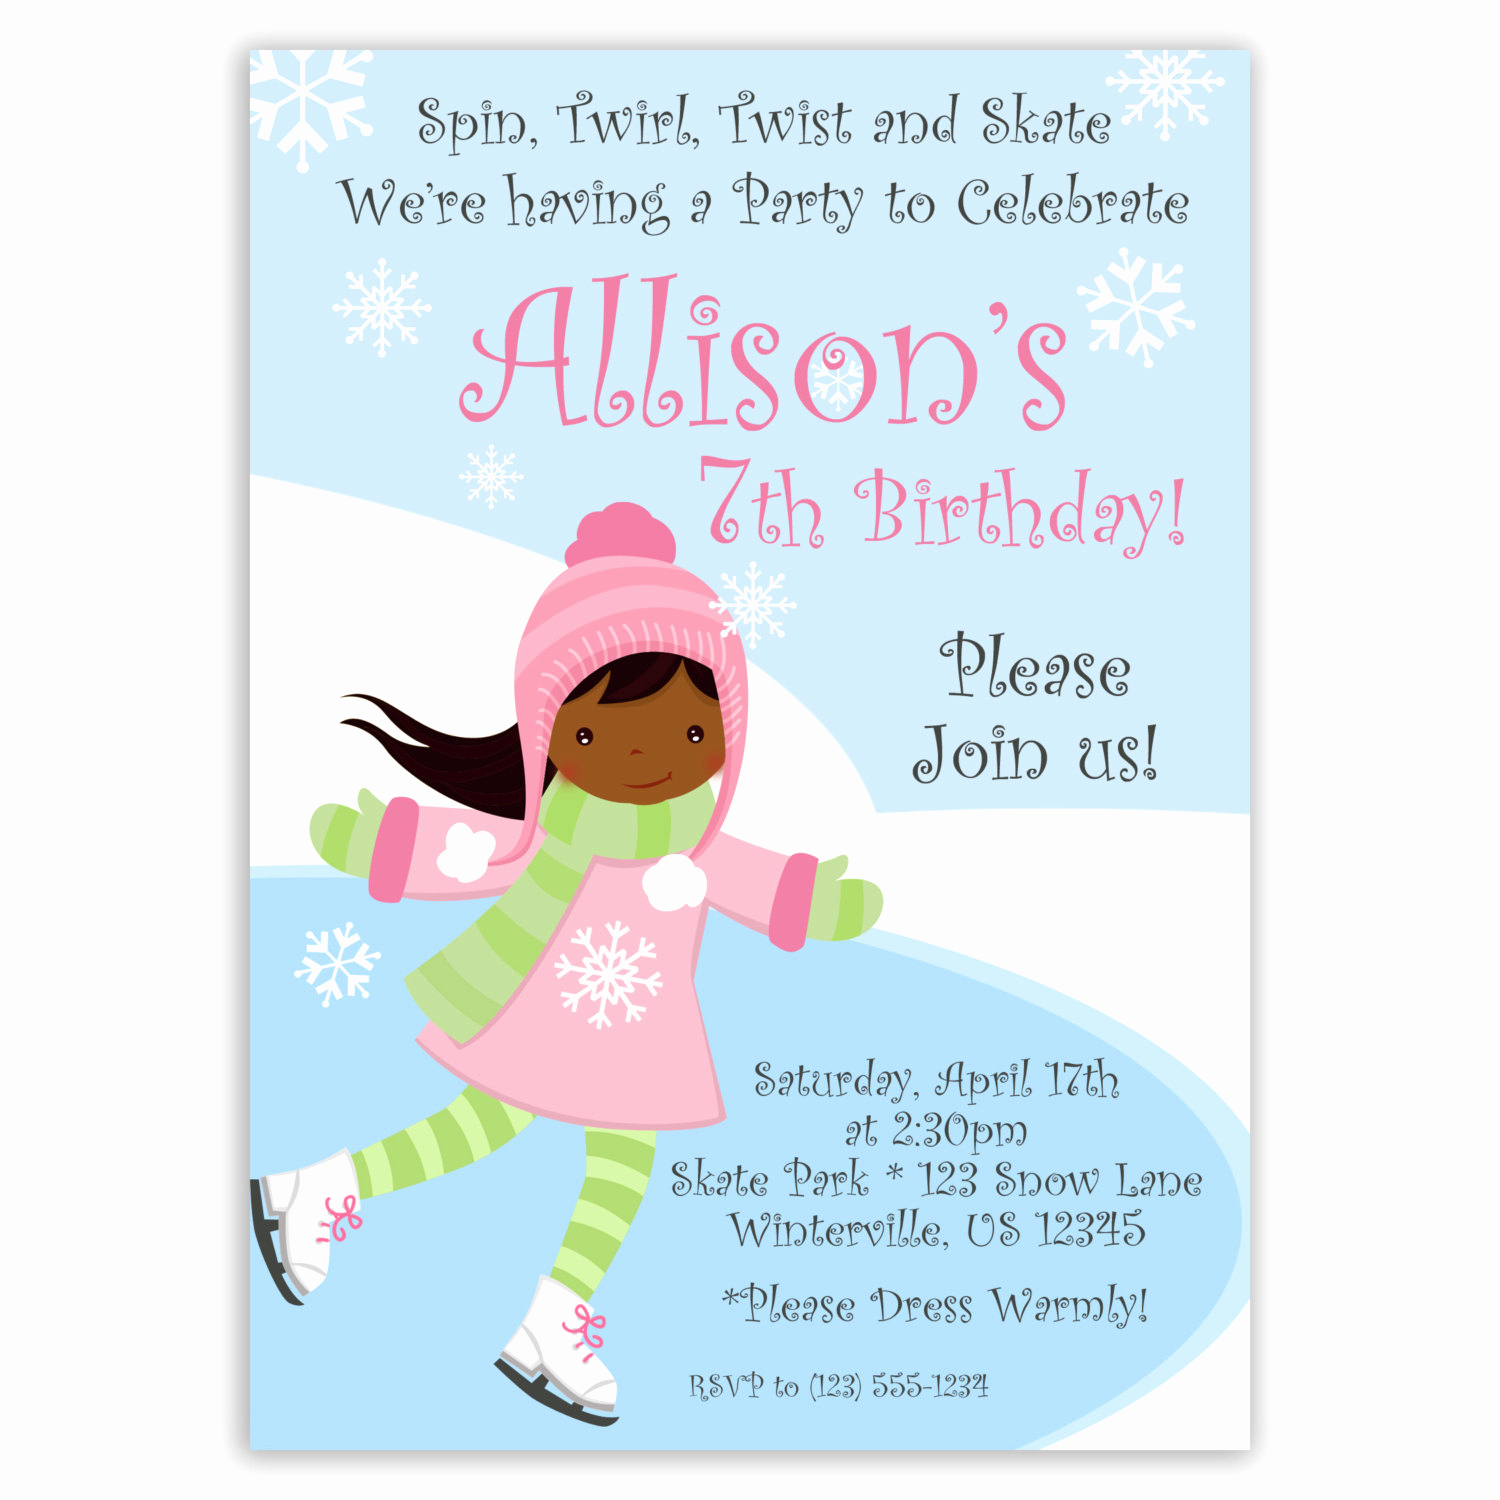 Ice Skating Party Invitation Awesome Ice Skating Invitation Frozen Winter Pond and Snow Cute